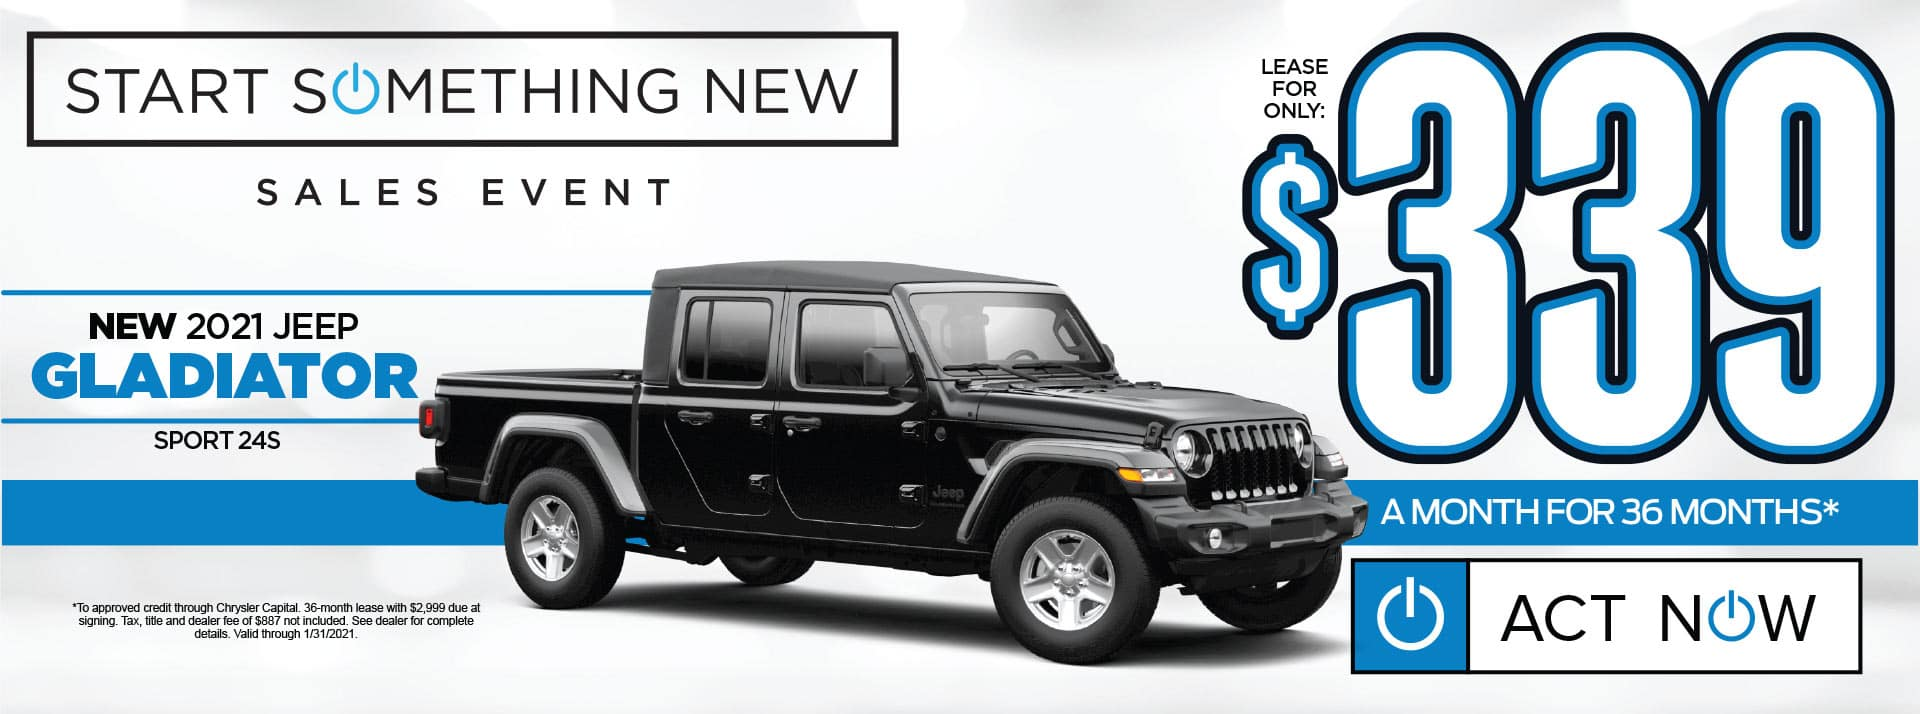 NEW 2021 JEEP GLADIATOR LEASE FOR $339/MO* SHOP NOW